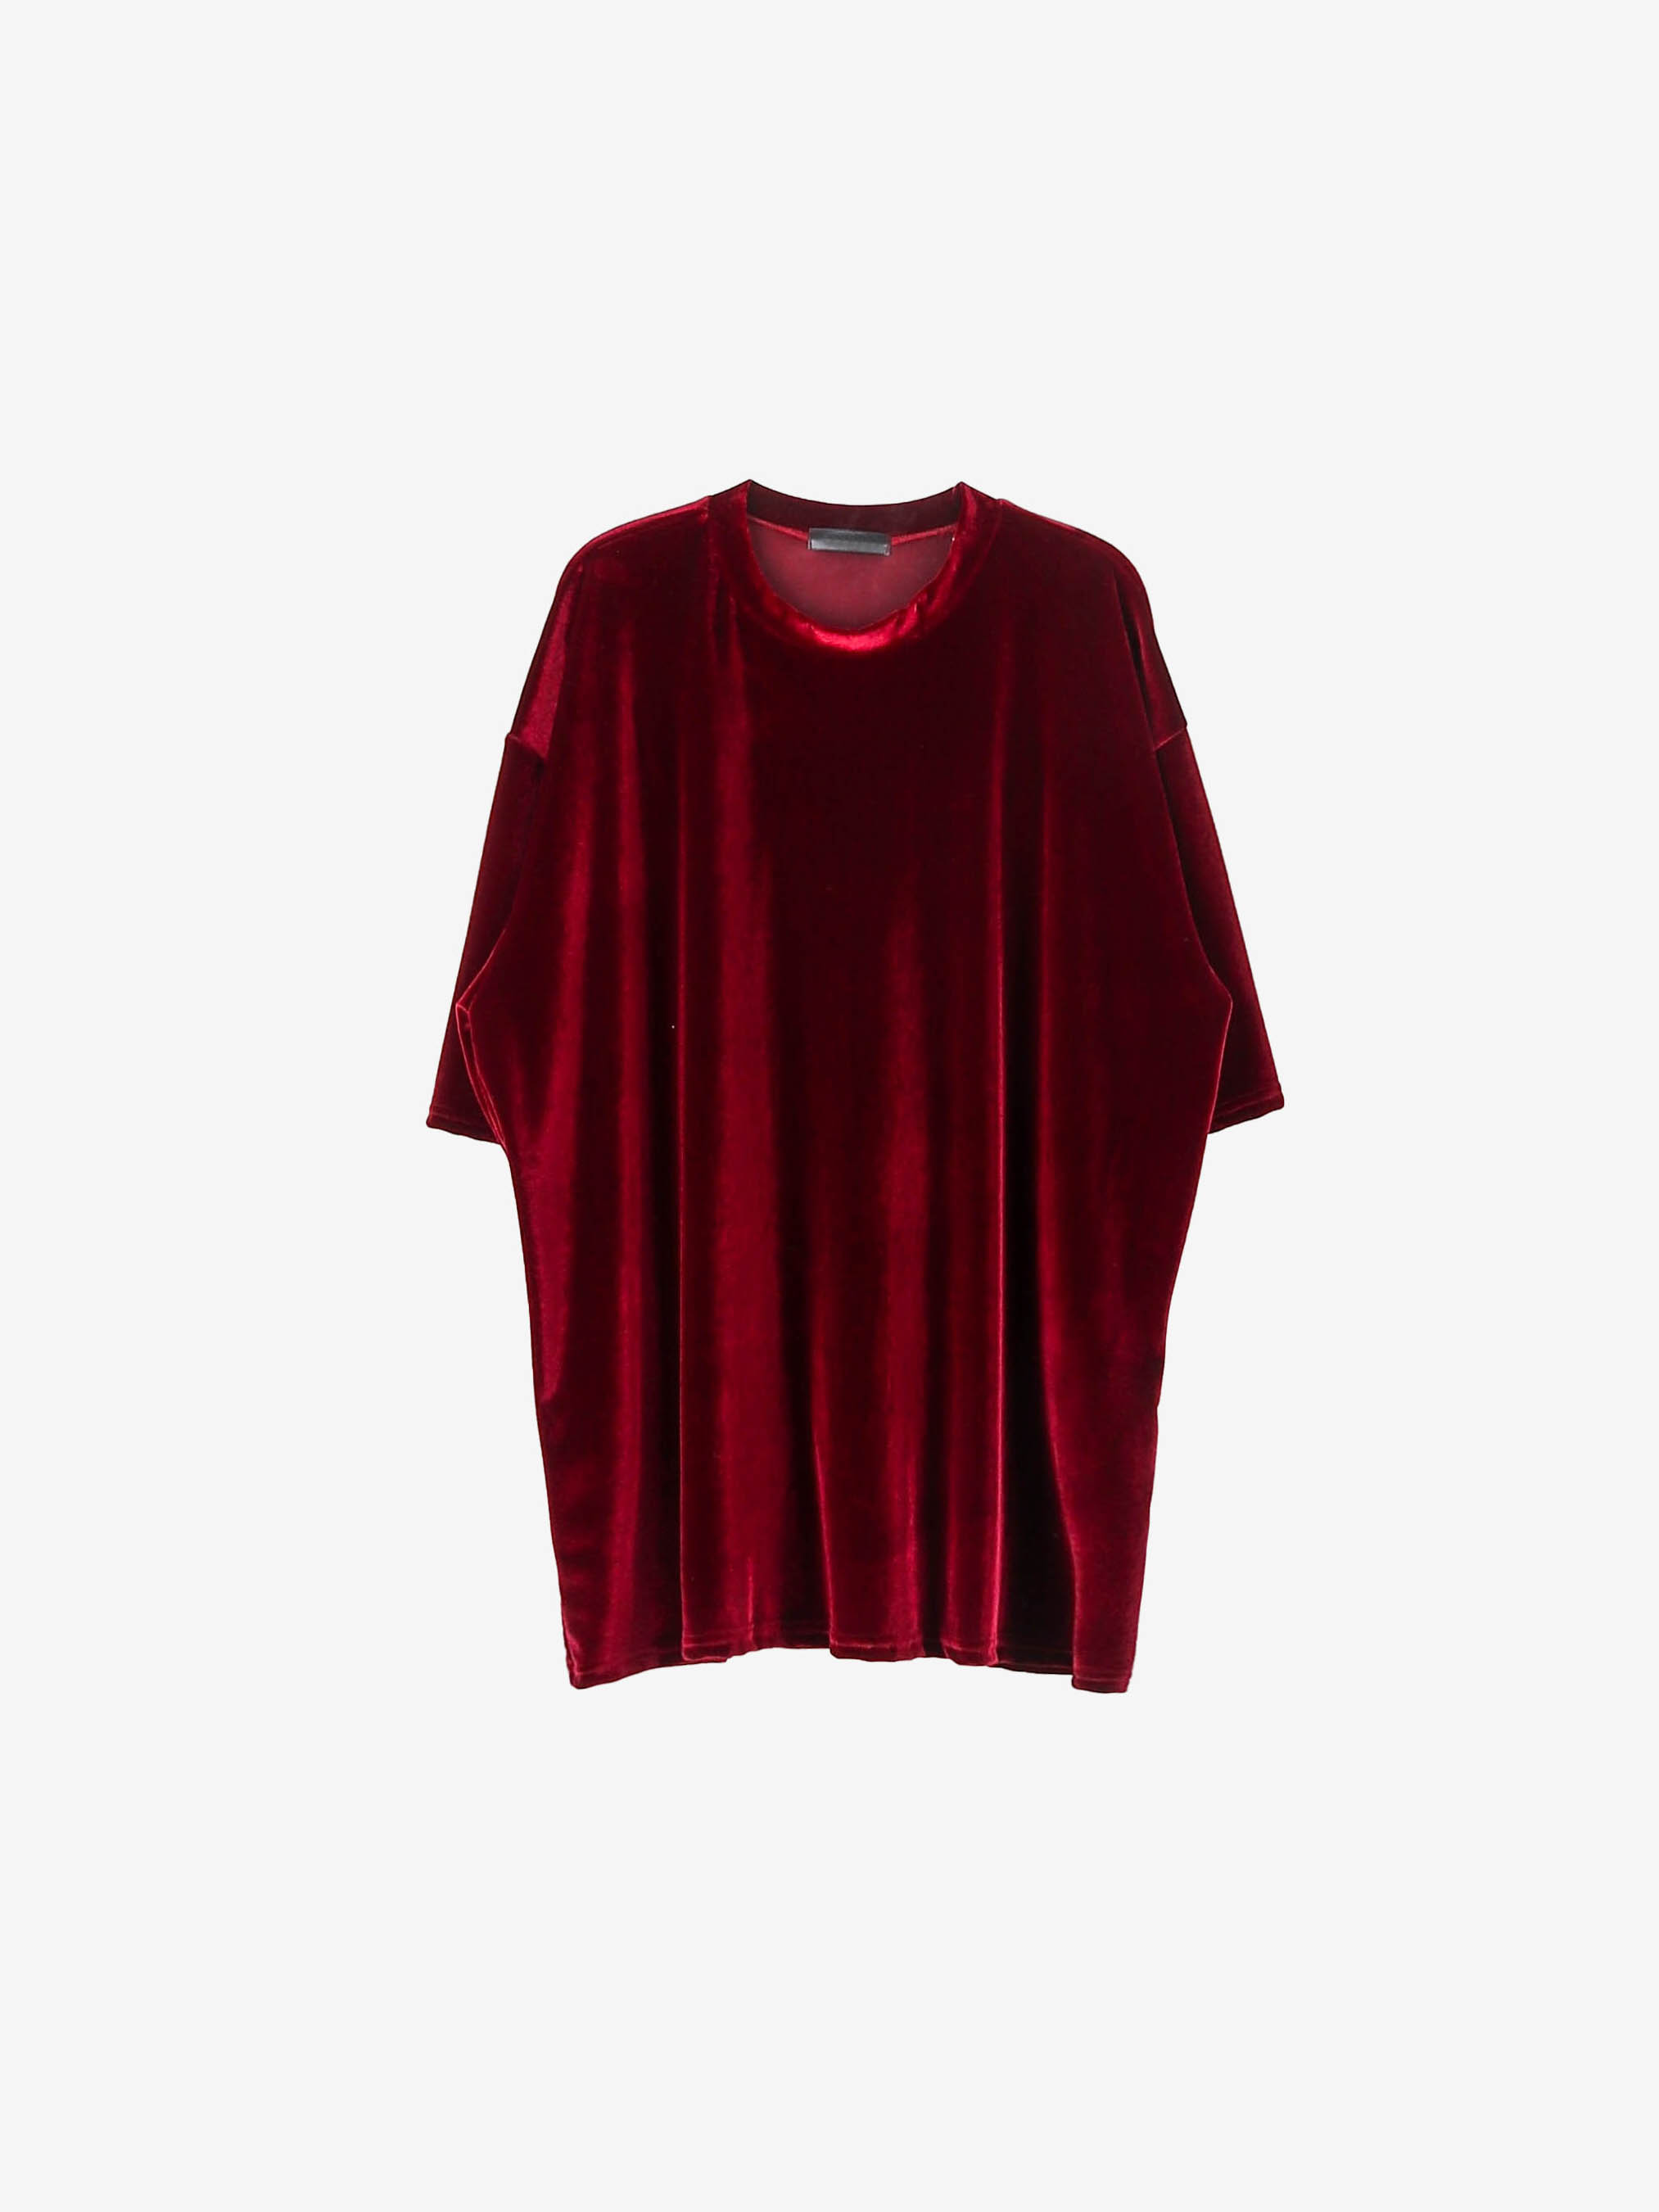 PC Velvet Short Sleeve Tee (5color)